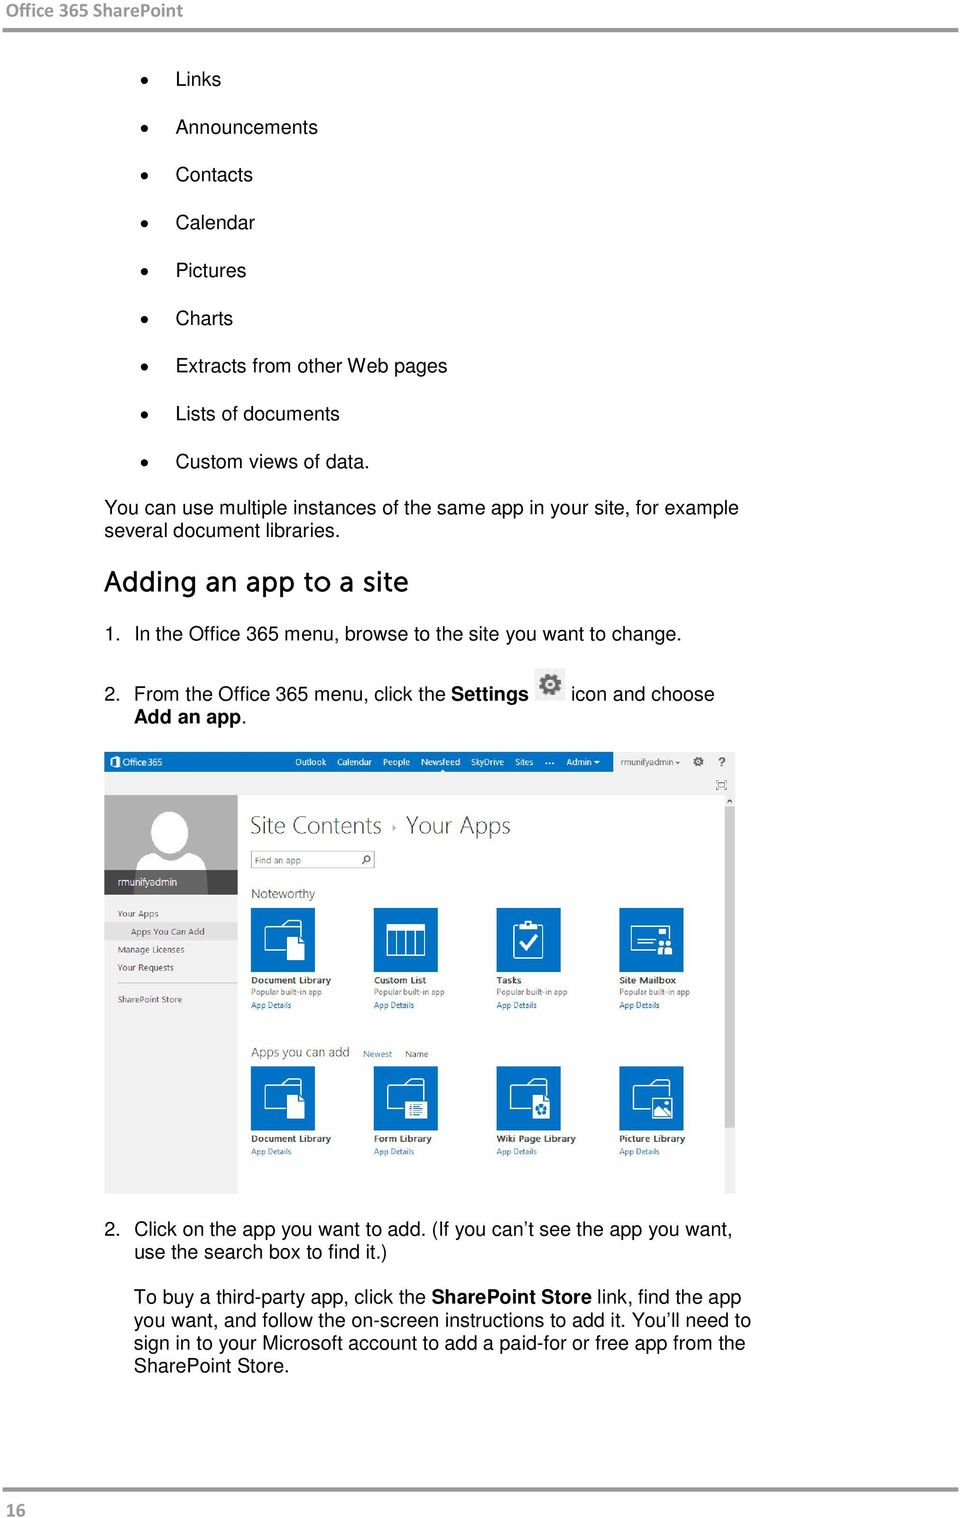 In the Office 365 menu, browse to the site you want to change. 2. From the Office 365 menu, click the Settings icon and choose Add an app. 2. Click on the app you want to add.